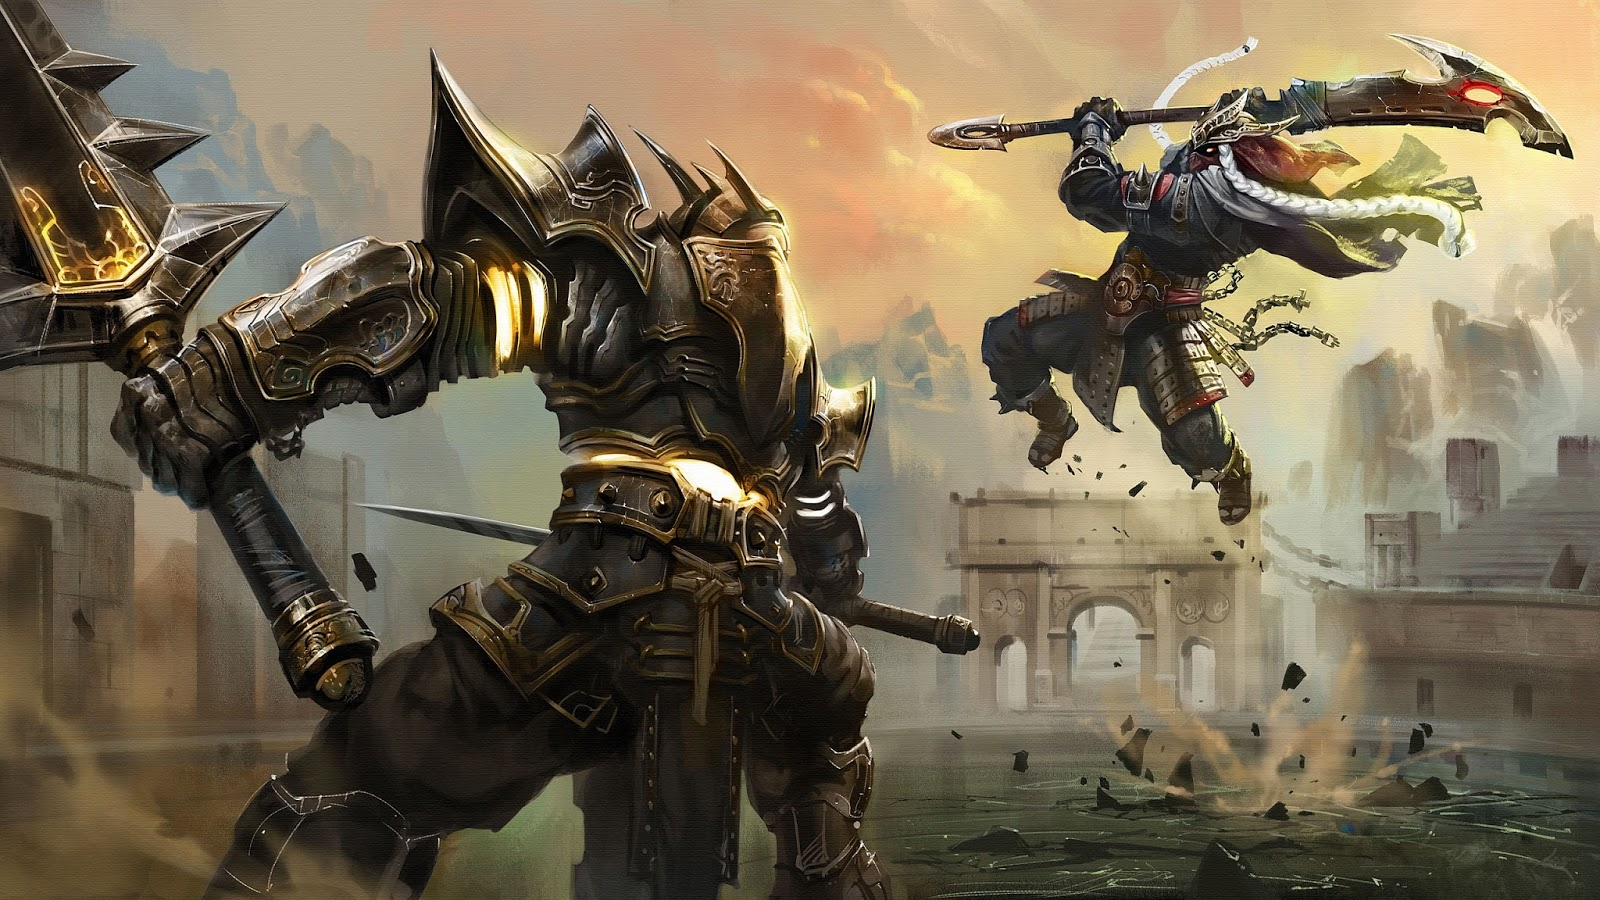 Epic Knight Warrior Fight Sword Weapon Armor Jump Fantasy HD Wallpaper A31